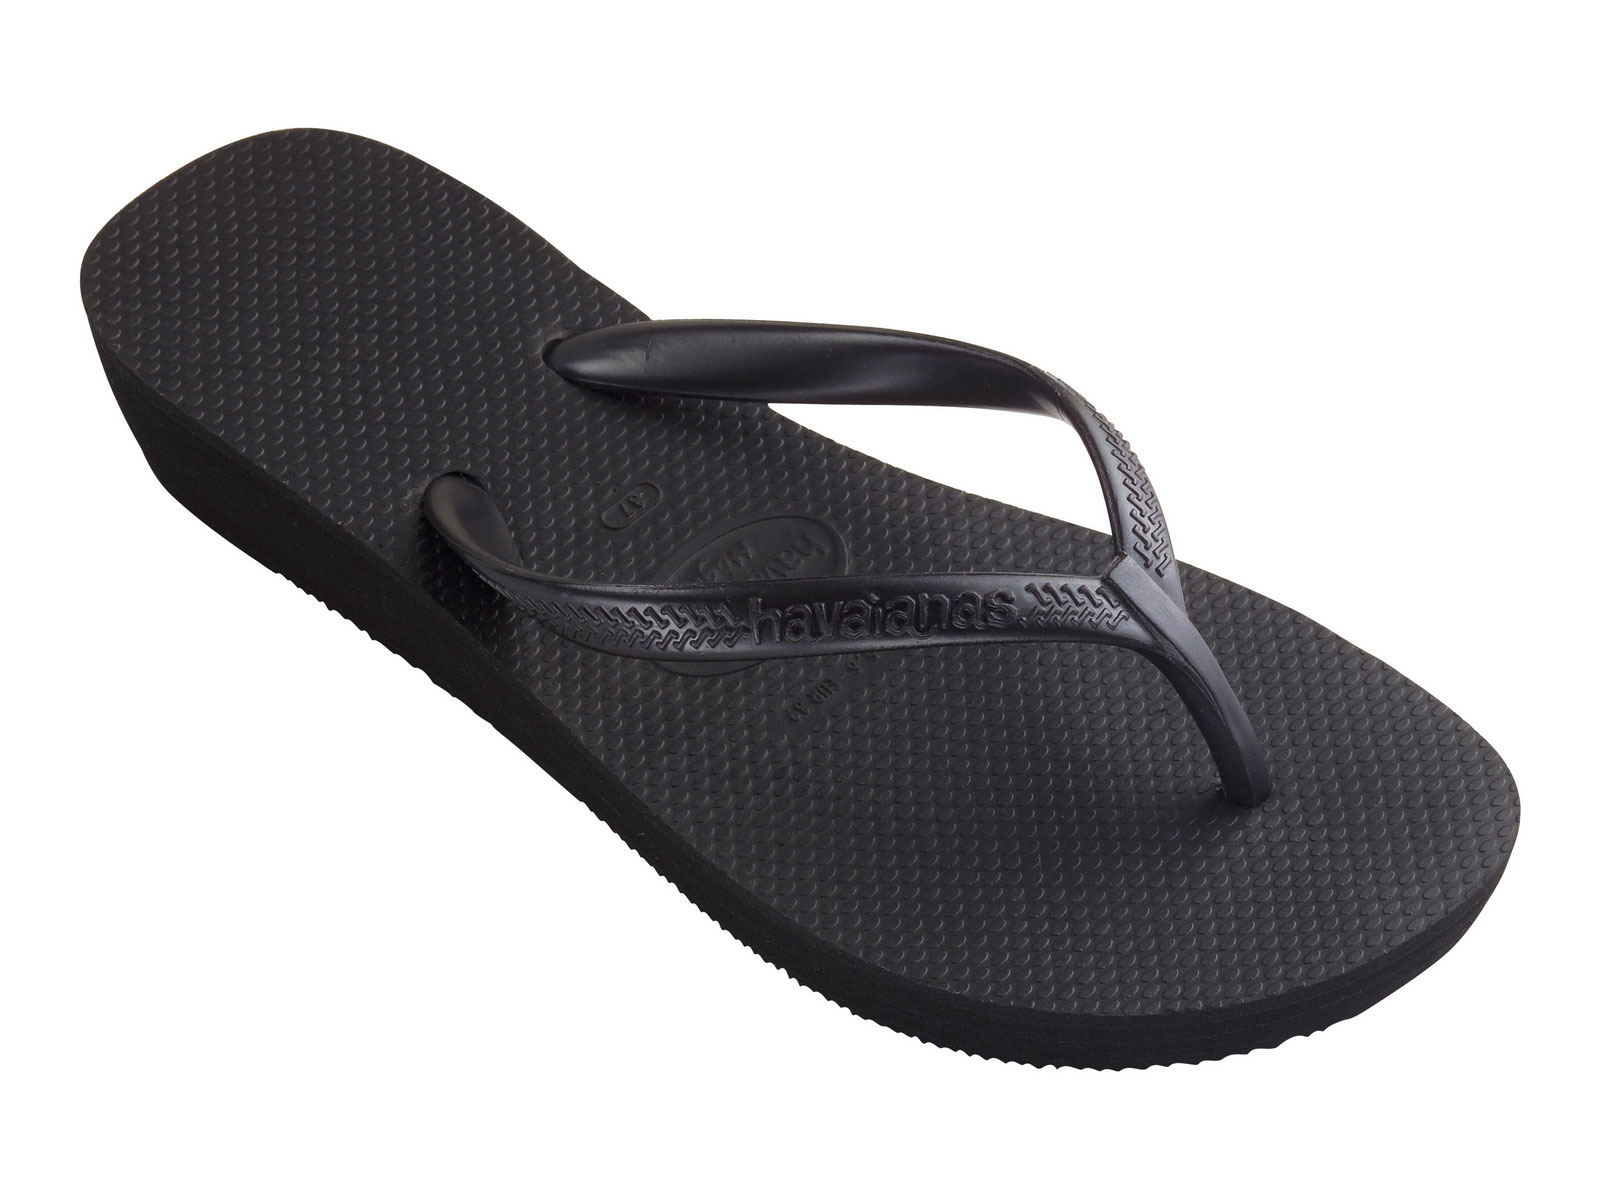 Flip-flops - High Light Black